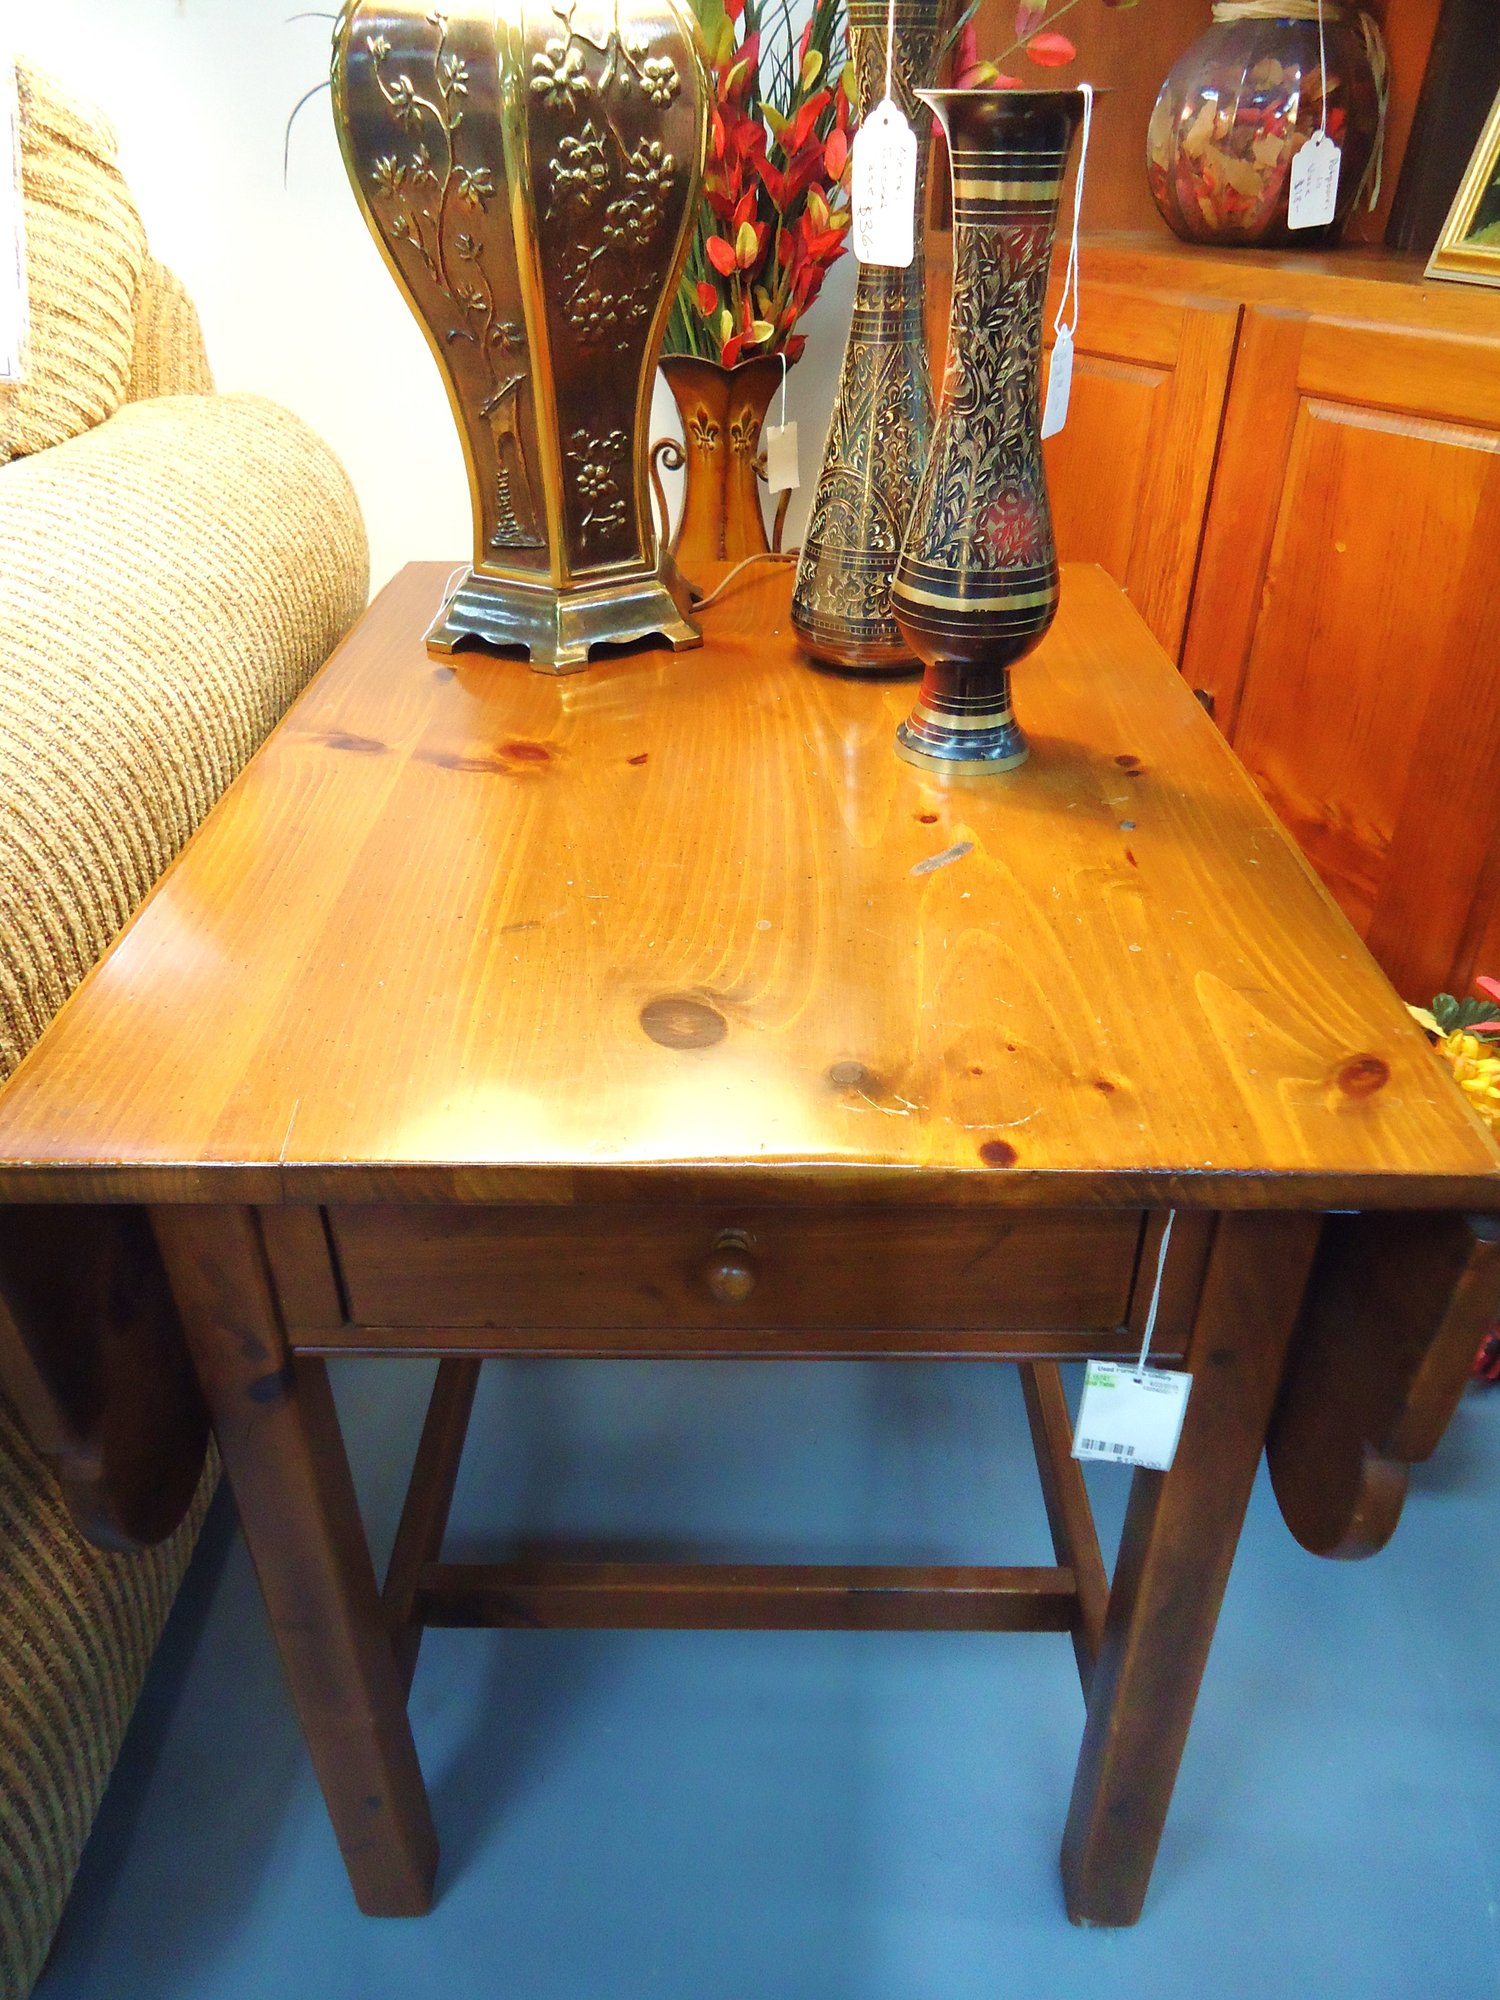 ethan allen pine end tables ebay. used furniture gallery - Ethan Allen Antique Pine End Table. Ethan Allen Pine End Tables Ebay